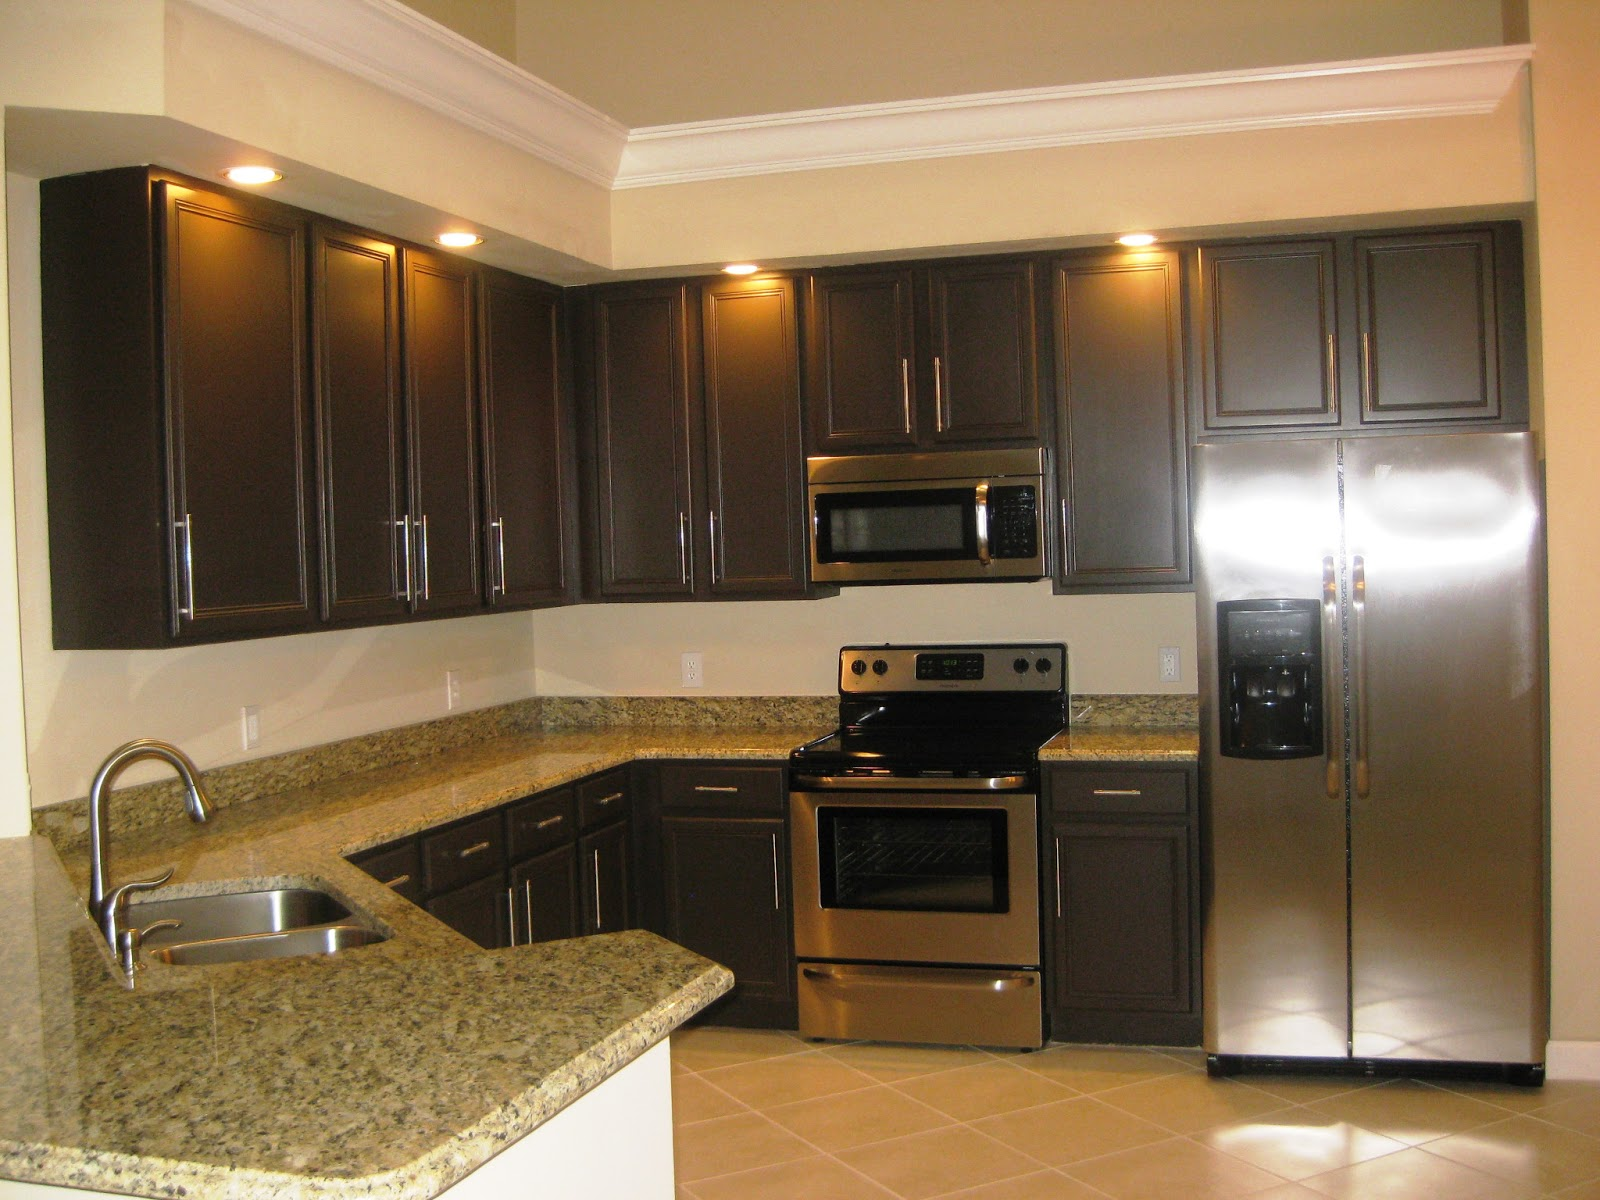 Paint For Kitchen Custom Of Kitchen Paint Color Ideas with Dark Cabinets Images